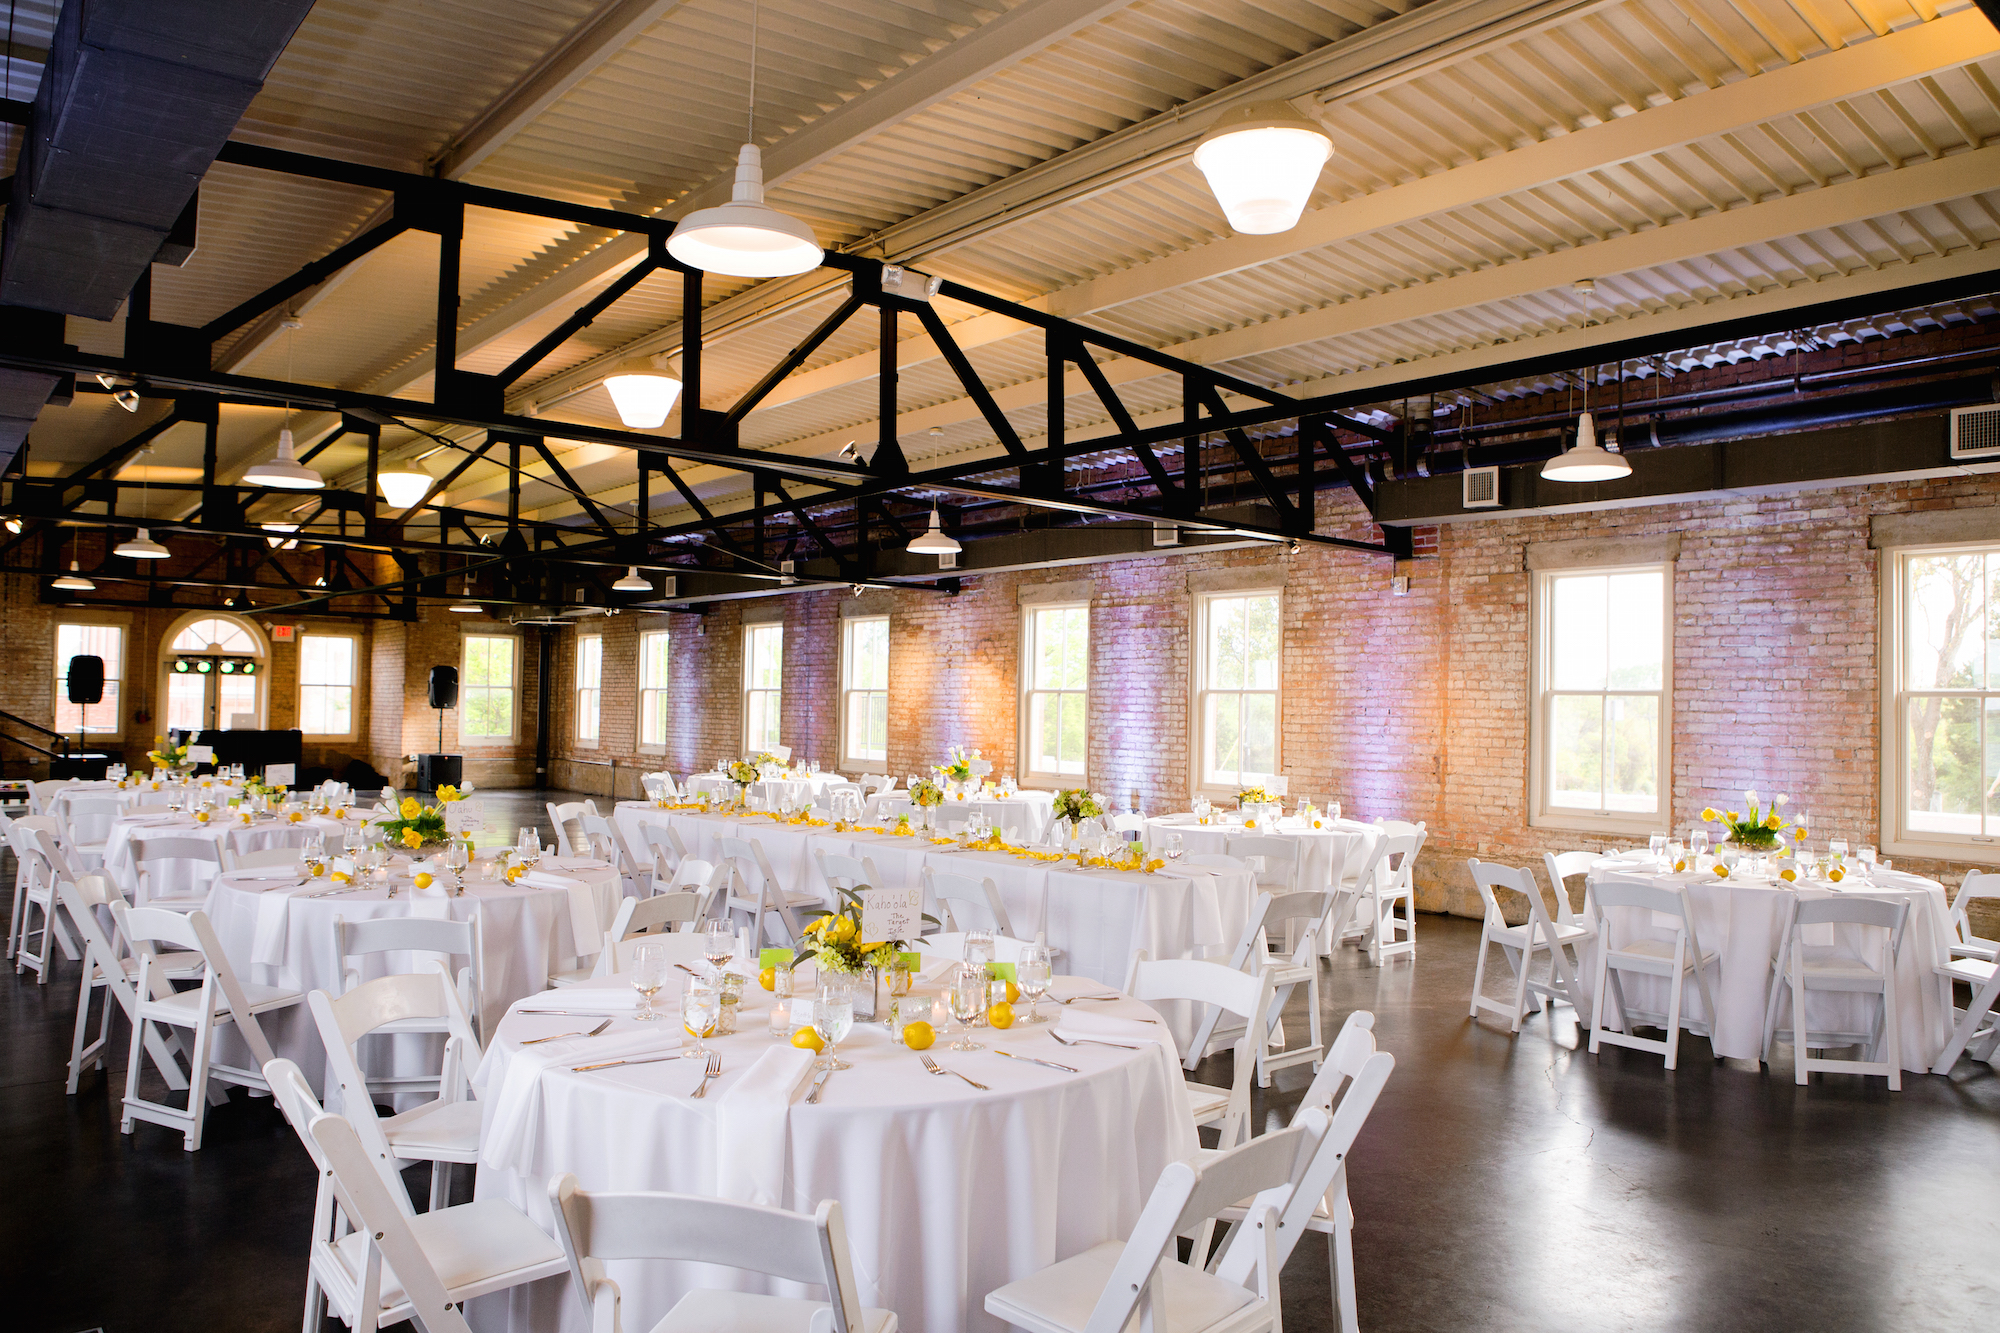 7 Sups Affordable Wedding Venues in DFW WeddingWire